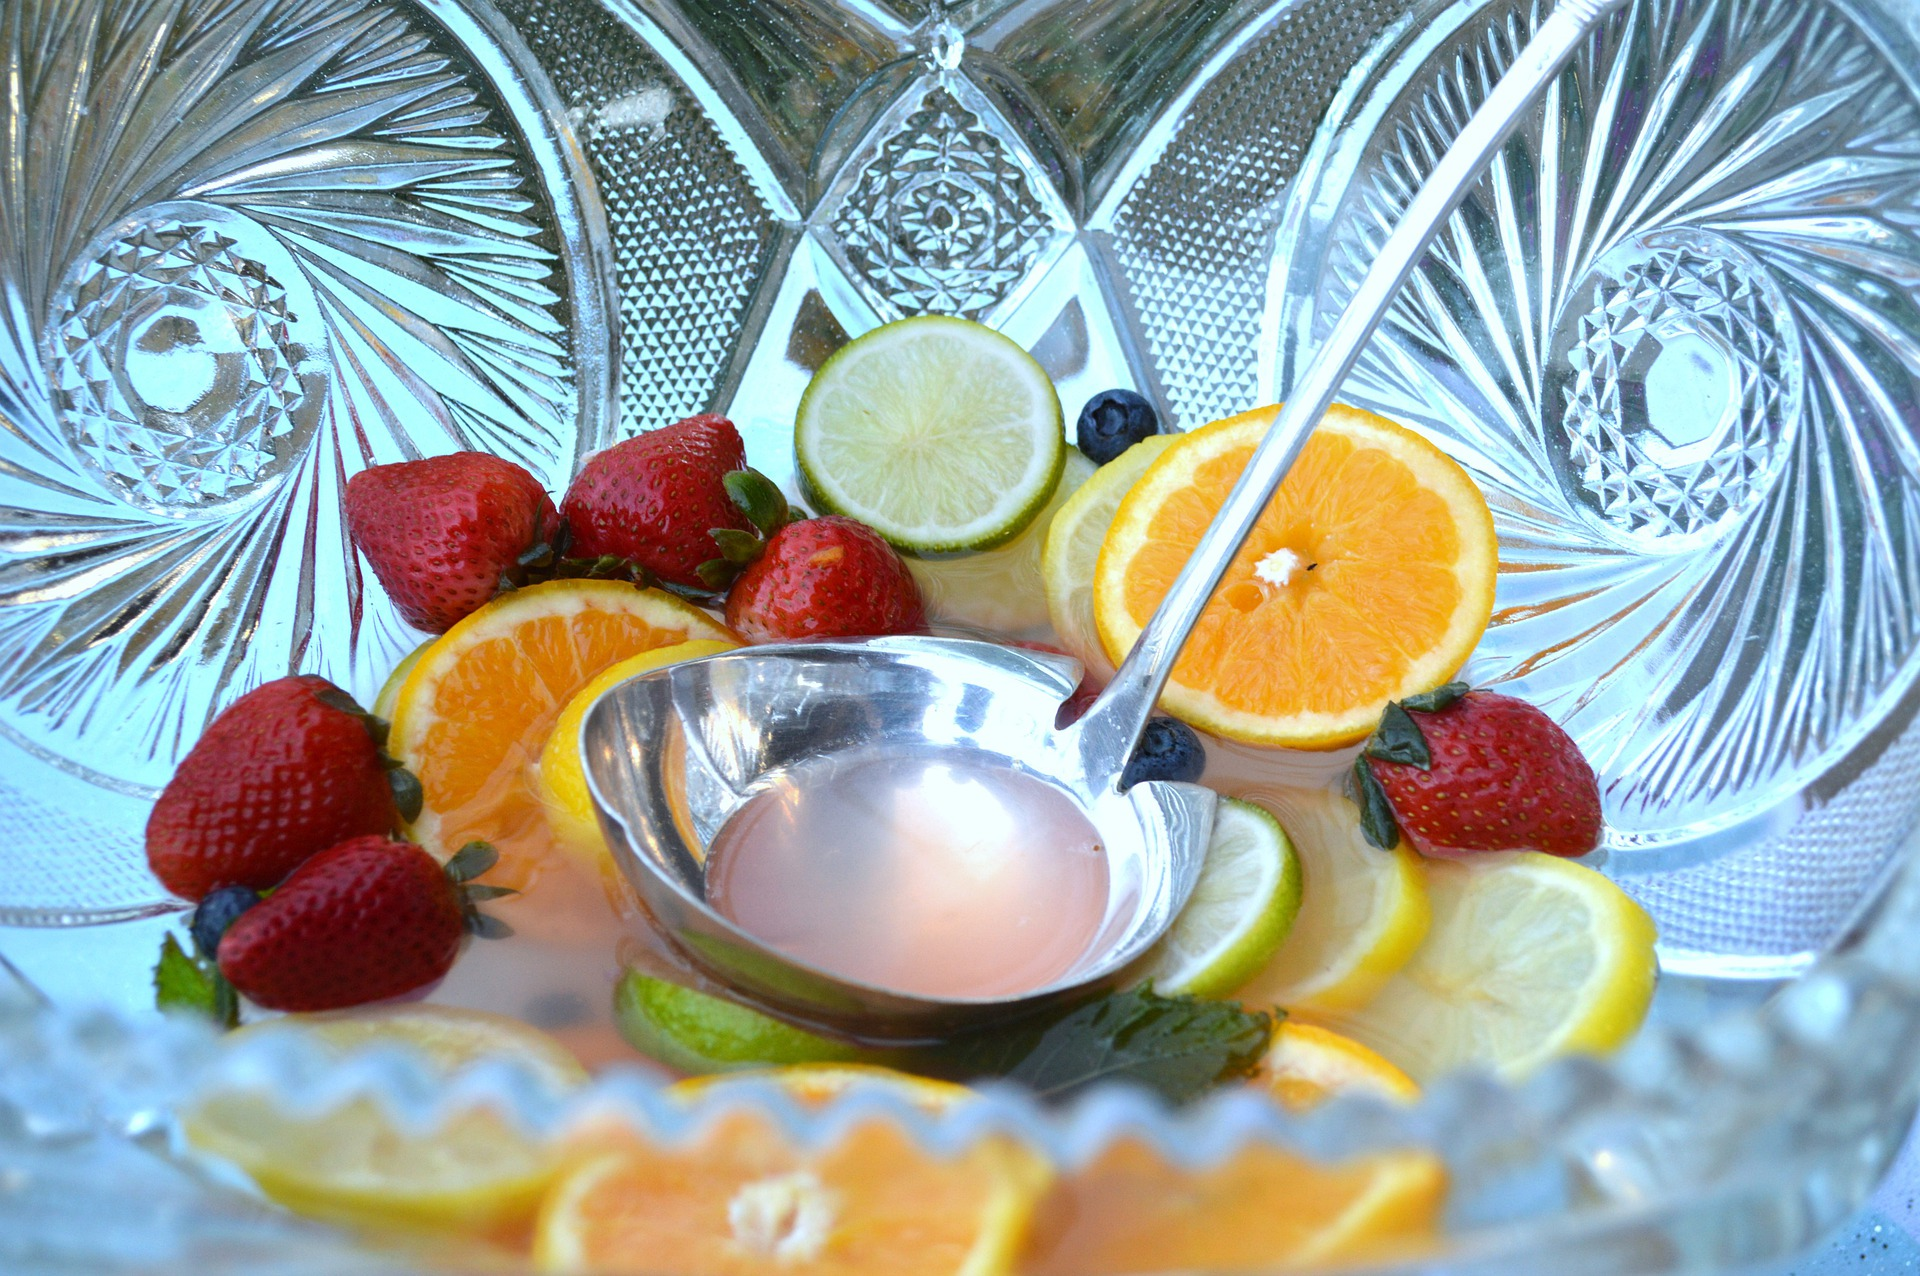 Aguas frescas are light non-alcoholic beverages made from one or more fruits,